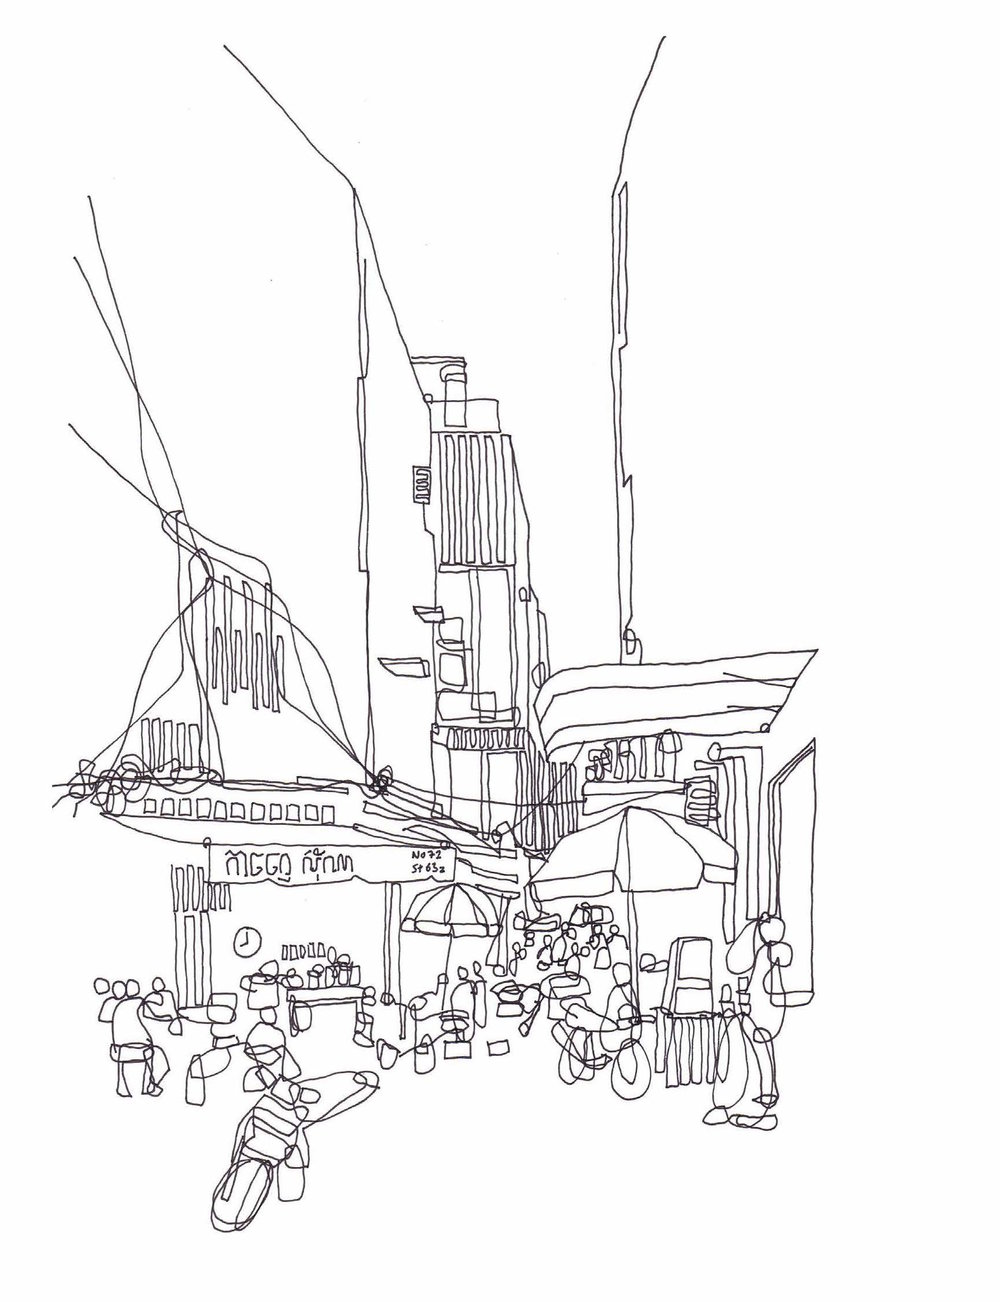 cambodia sketches 2015_Page_04.jpg